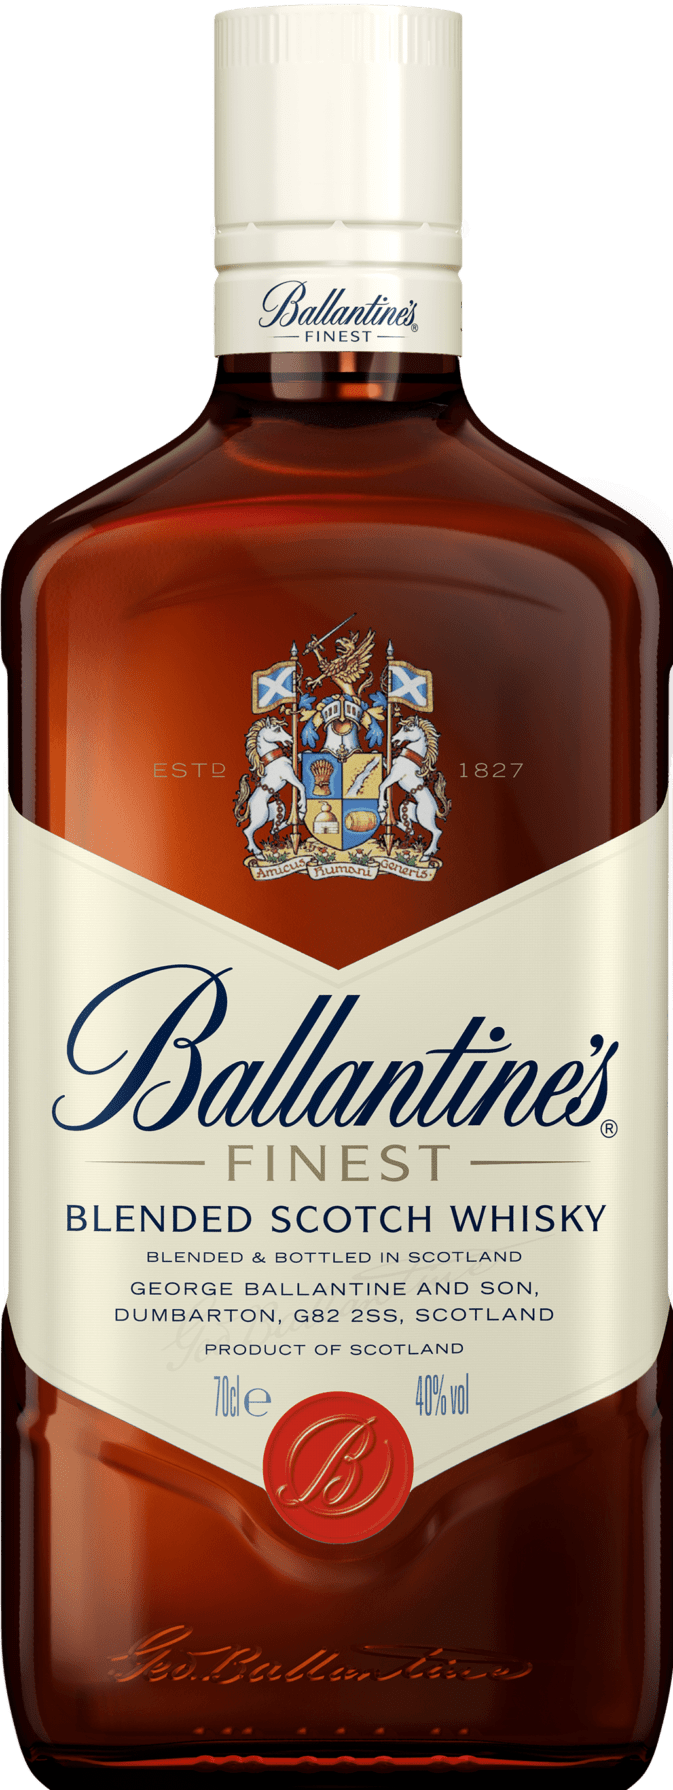 Ballantine's Finest Scotch Whisky Bottle